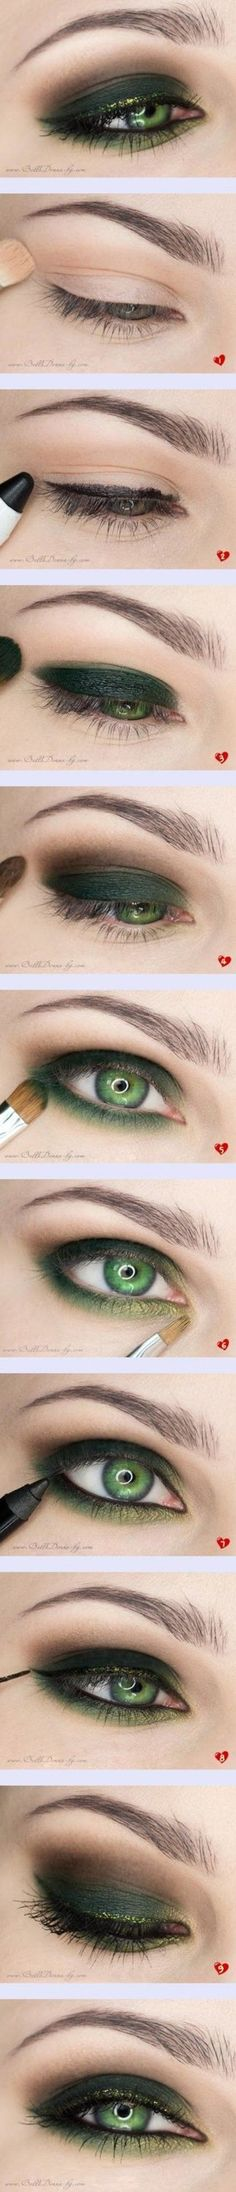 Easy to follow Step-by-Step Tutorial for a Green Smokey Eye!